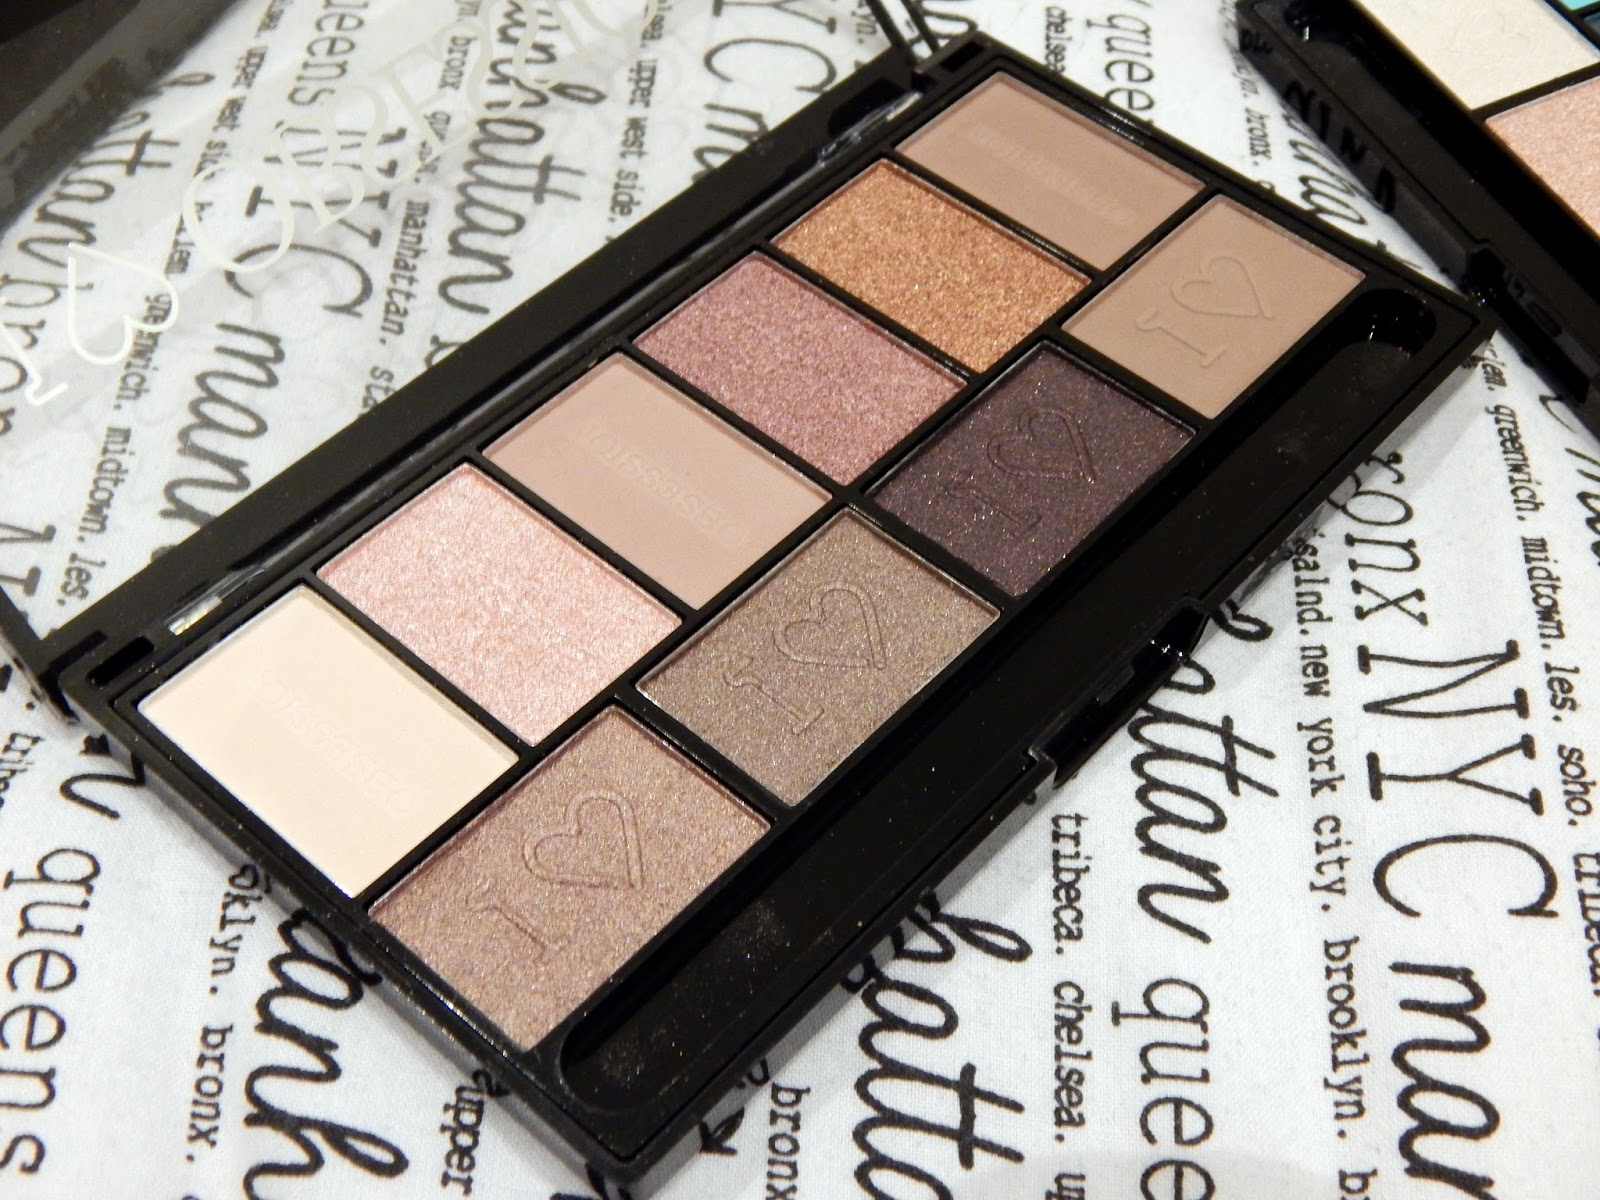 I Heart Makeup I Heart Obsession palette -Pure Cult -£3.99